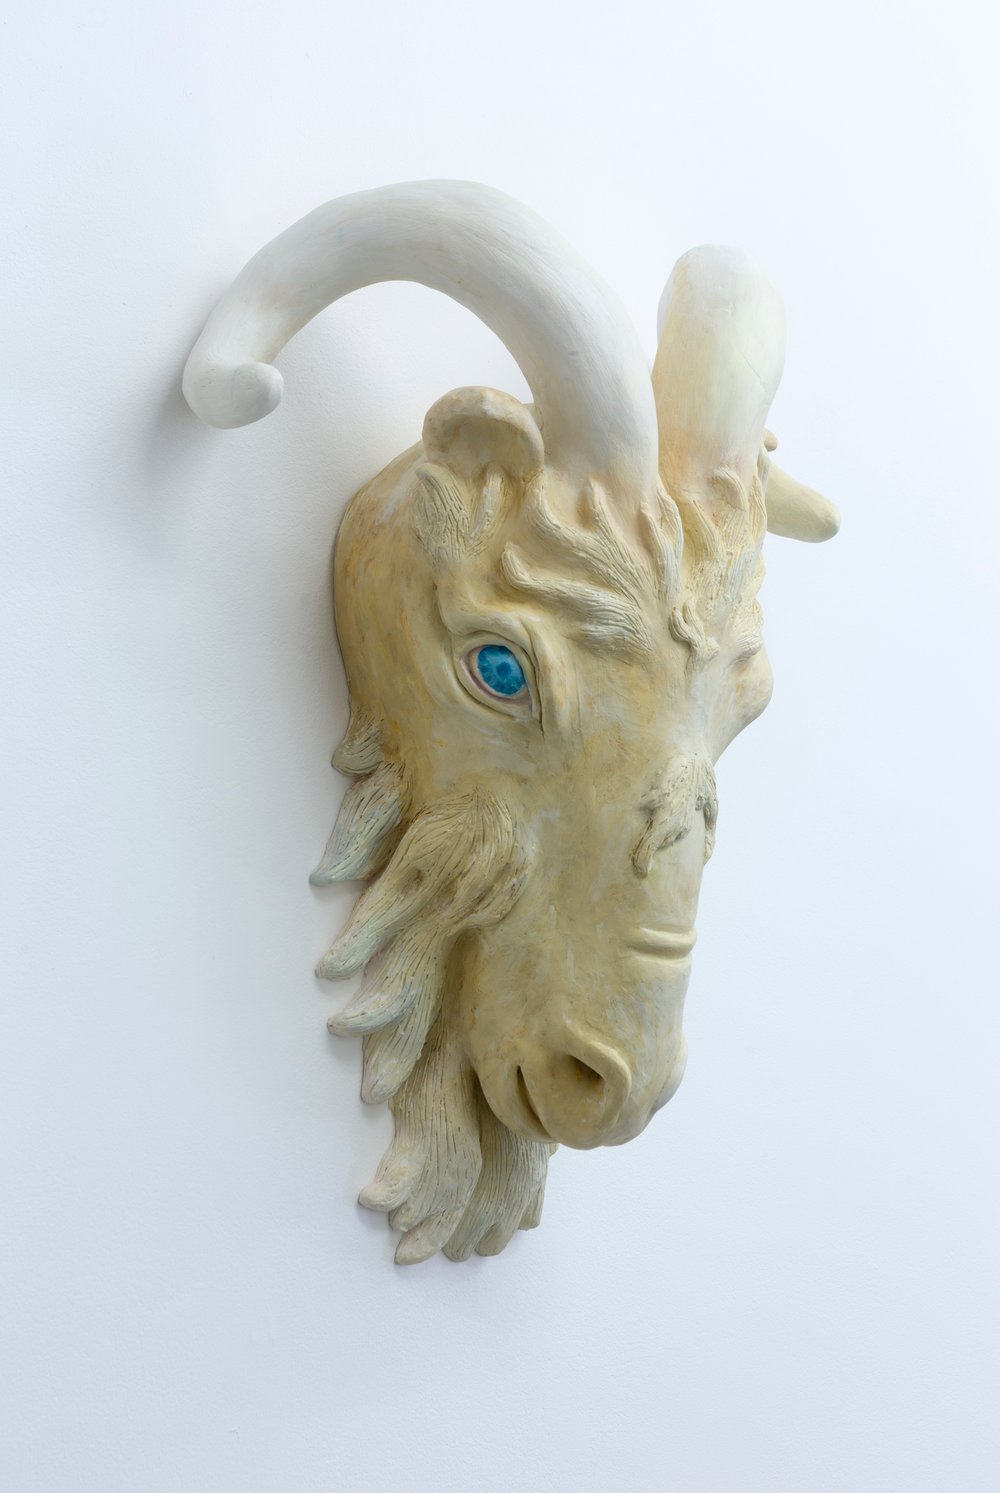 Goat, 2017 hand built ceramic, oil paint, photo: Jessica Maurer